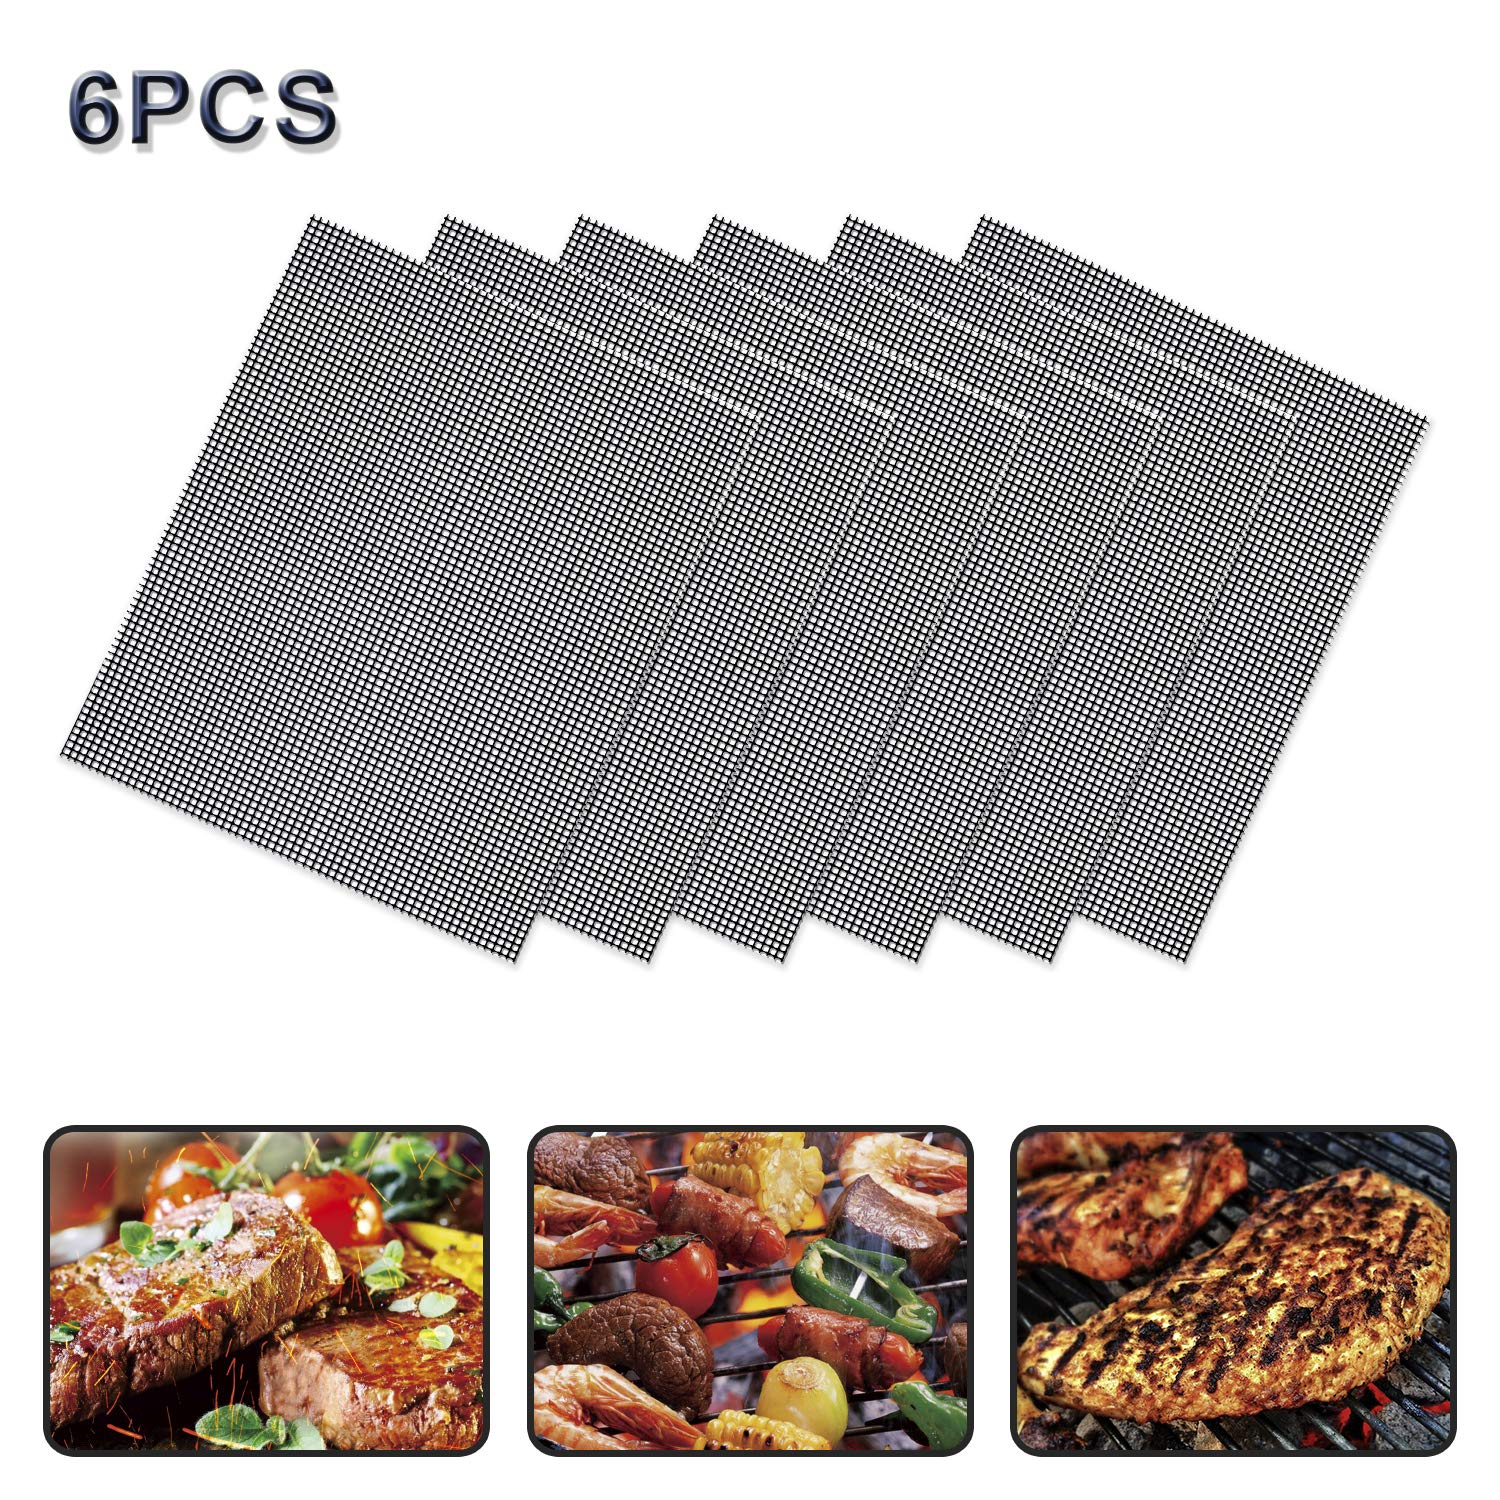 FYS Non Stick Grill Mesh Mats 6PCS-Nonstick Heavy Duty BBQ Grilling & Baking Accessories Reusable,and Easy to Clean - Works on Electric Grill Gas Charcoal BBQ - Extended Warranty-Can be Cut,Black by FYS